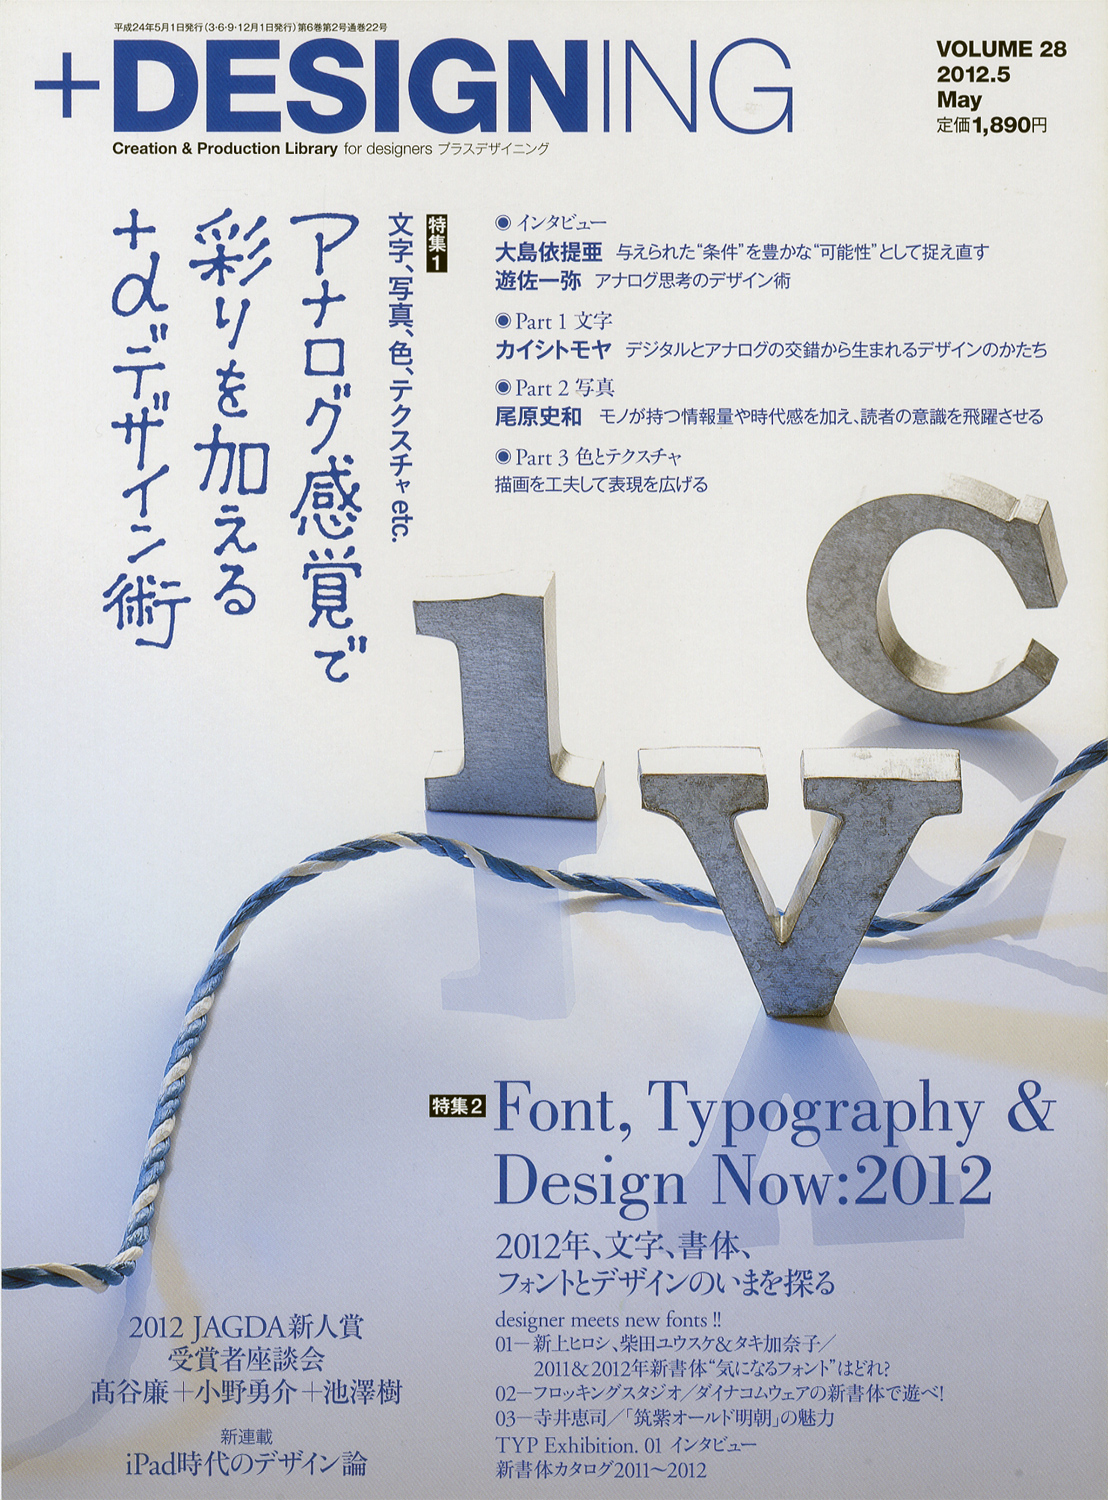 +DESIGNING VOLUME 28 2012.5 May[image1]